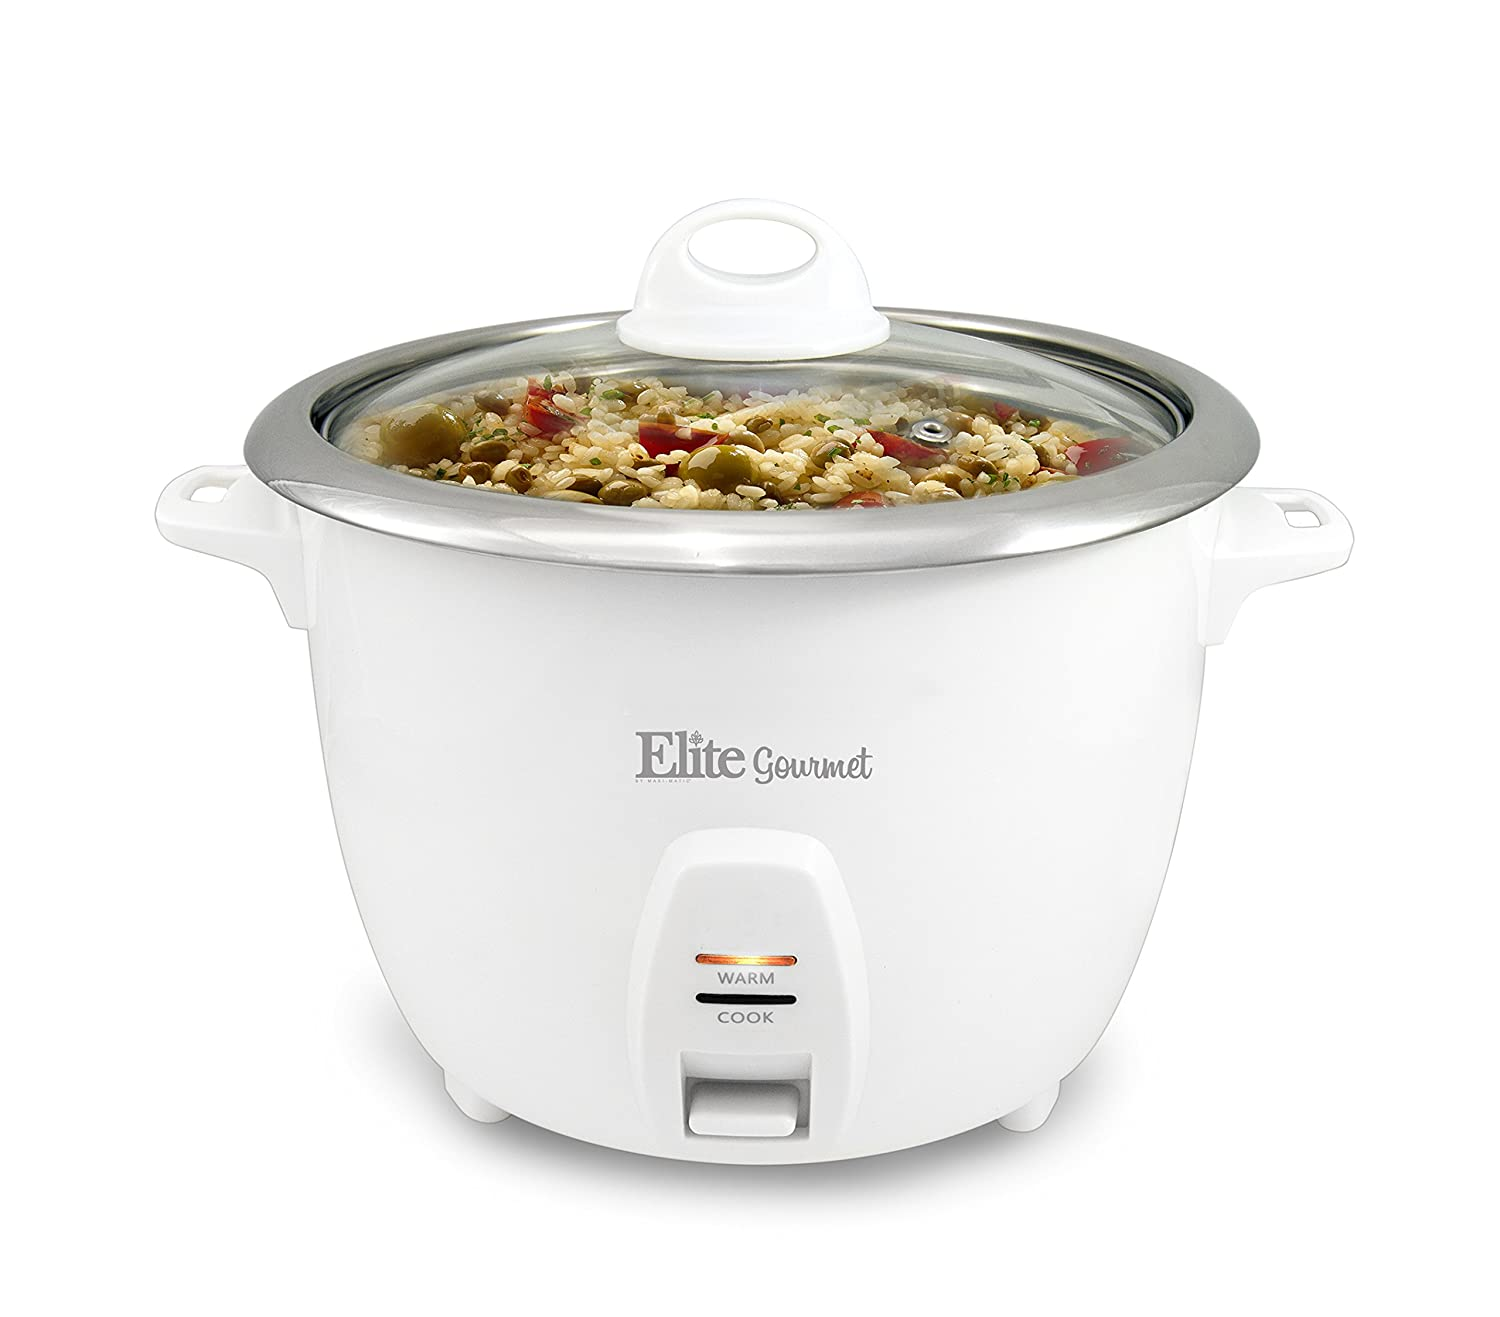 Amazon.com: Elite Gourmet ERC-2010 Rice Cooker with Stainless Steel  Removable Pot, Glass Lid, Automatic Keep Warm Function, Makes Soups, Stews,  Grains, ...